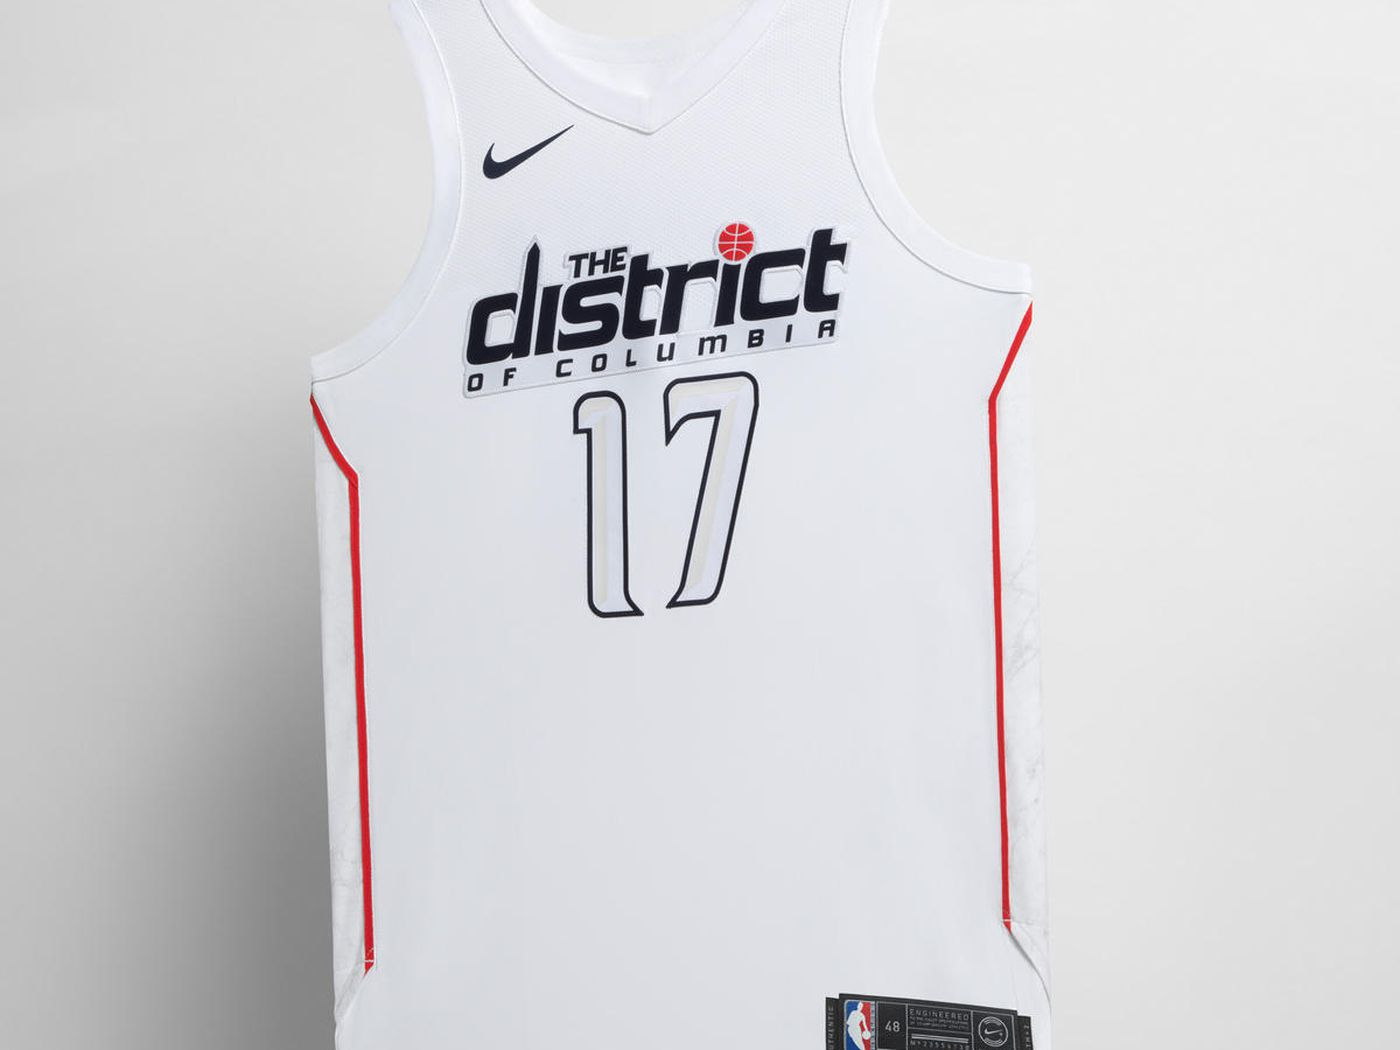 official photos e58b5 223b4 Here is the Wizards 'The District' City Edition uniform ...